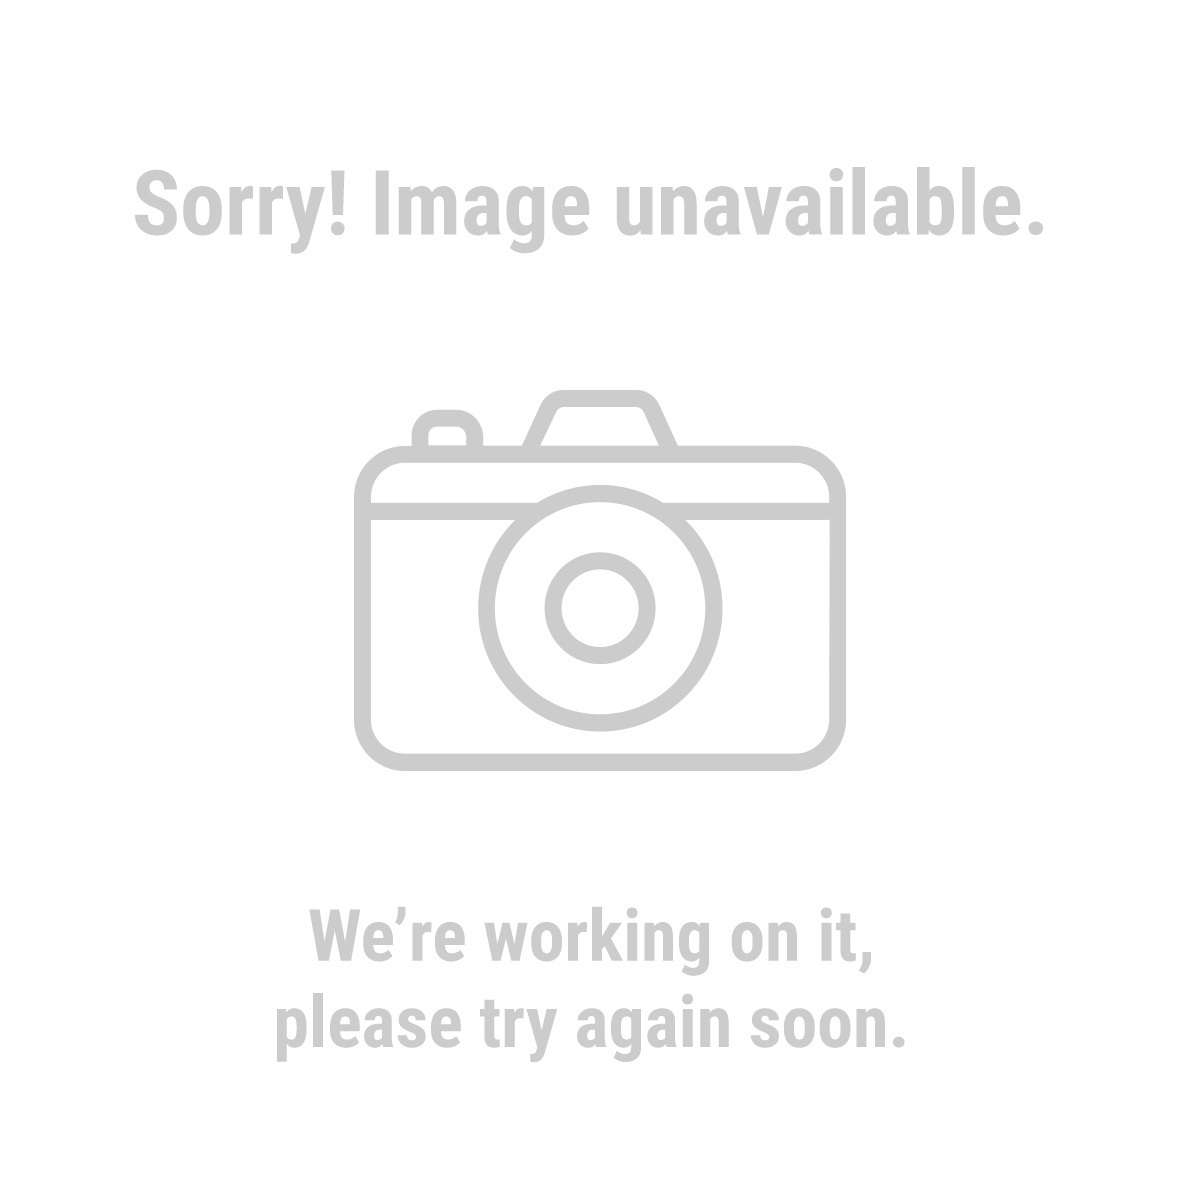 in. x 12 in. 1/3 HP Benchtop Wood Lathe